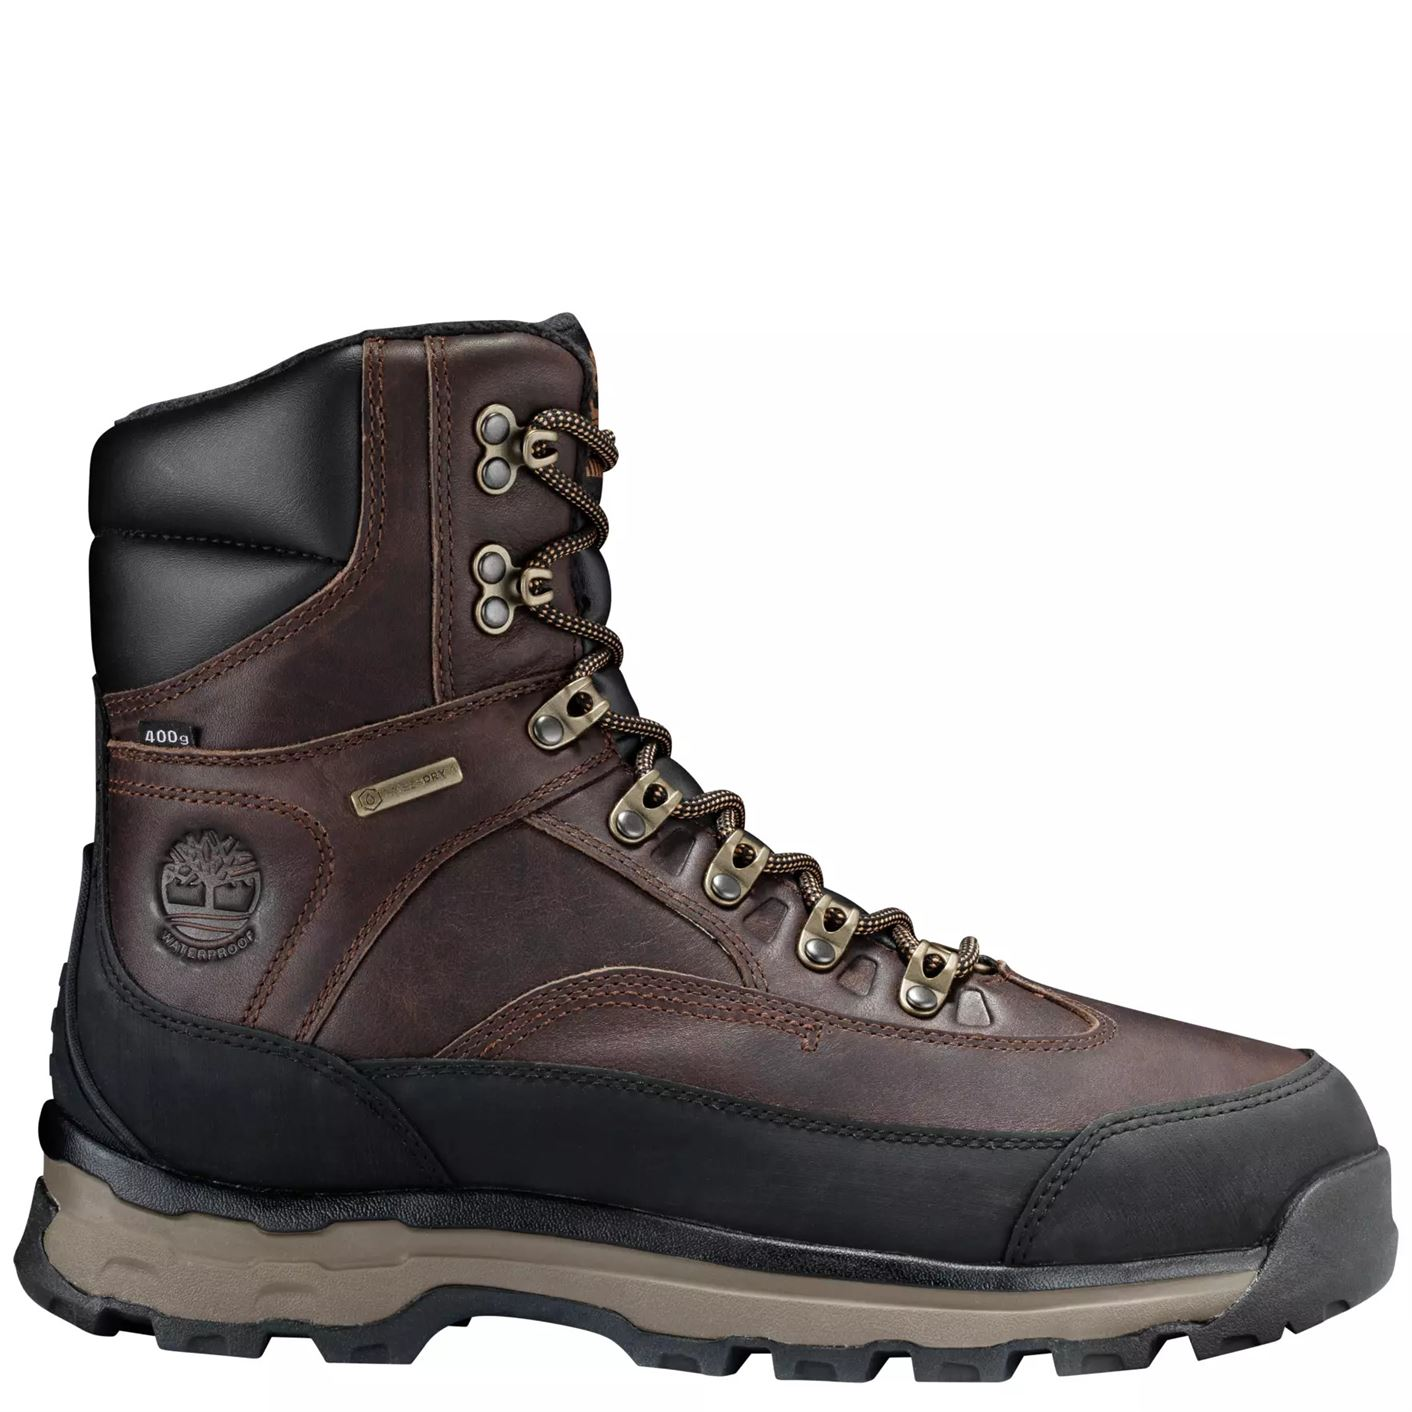 Chocorua 8 in Waterproof Boot - Men's